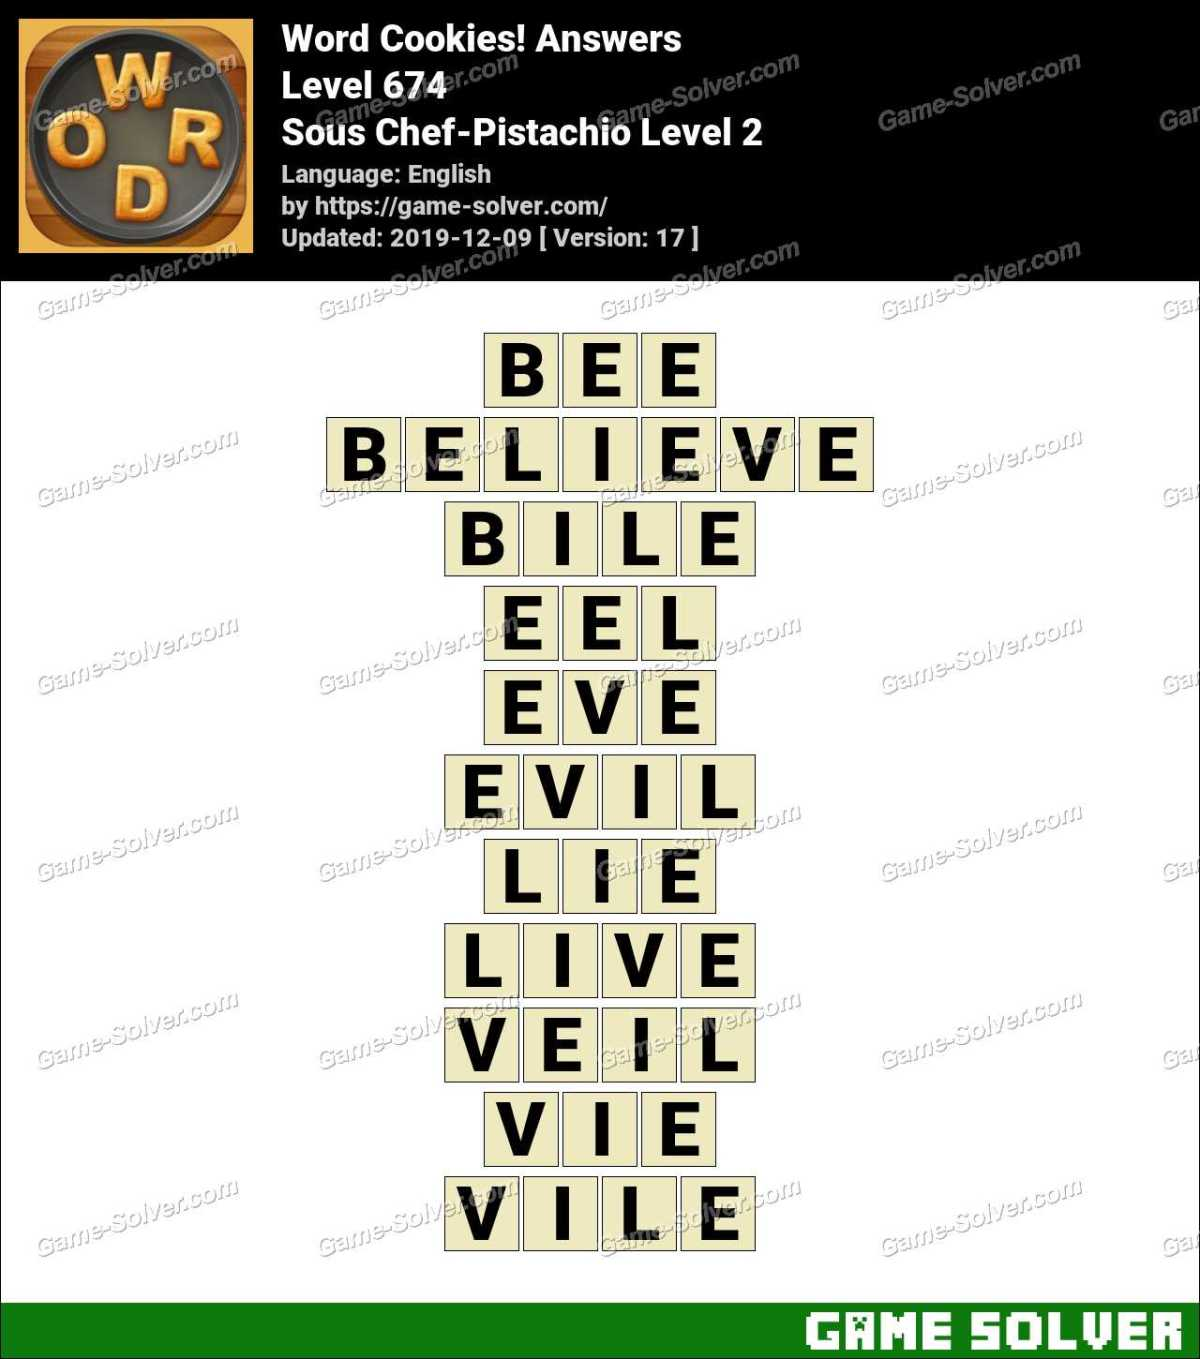 Word Cookies Sous Chef-Pistachio Level 2 Answers